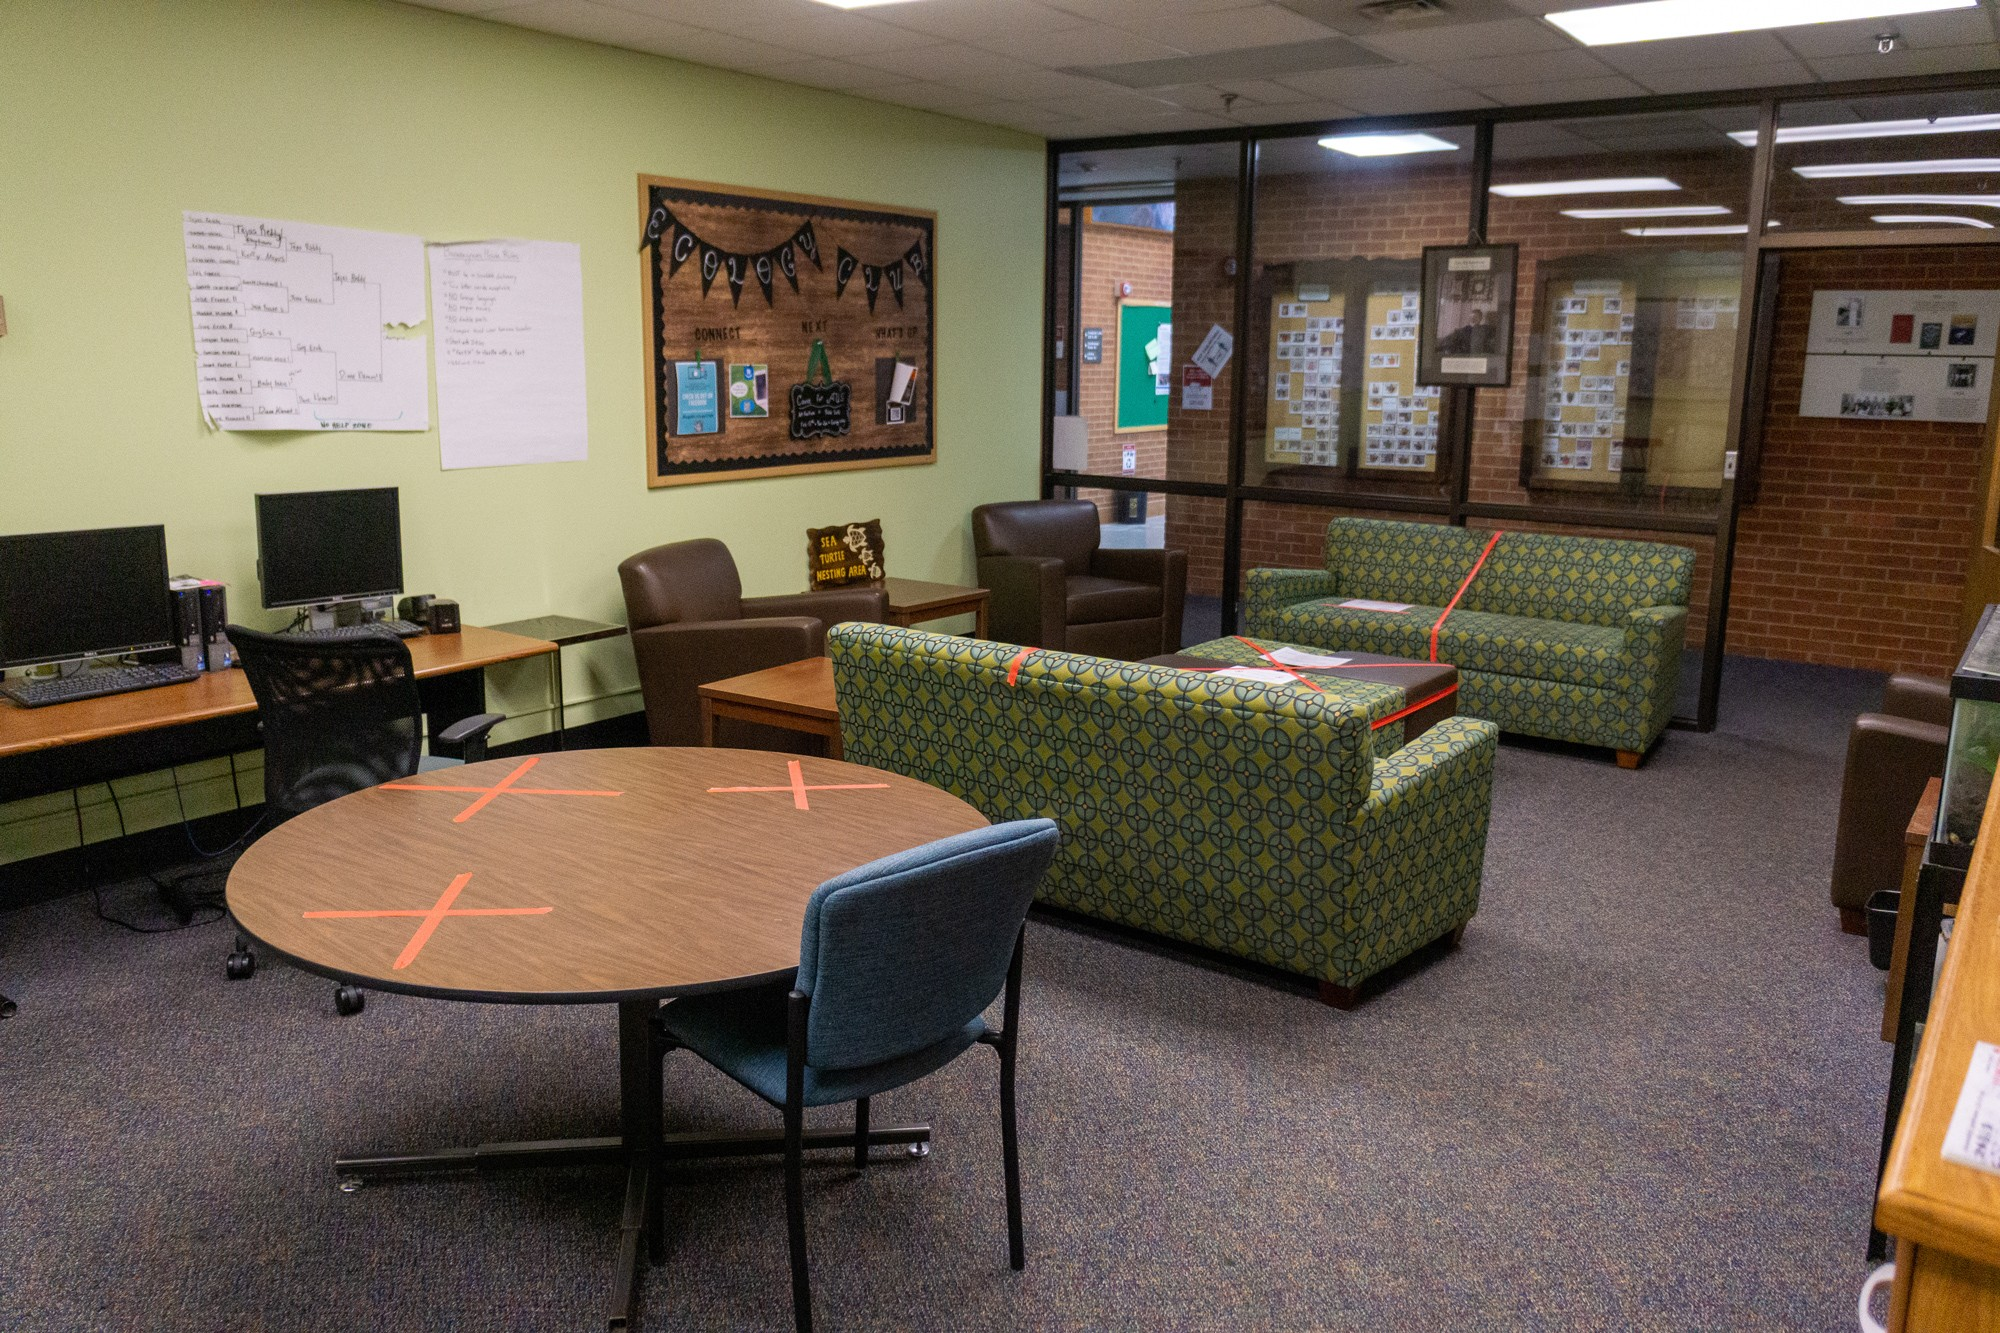 image of student lounge rearranged for social distancing